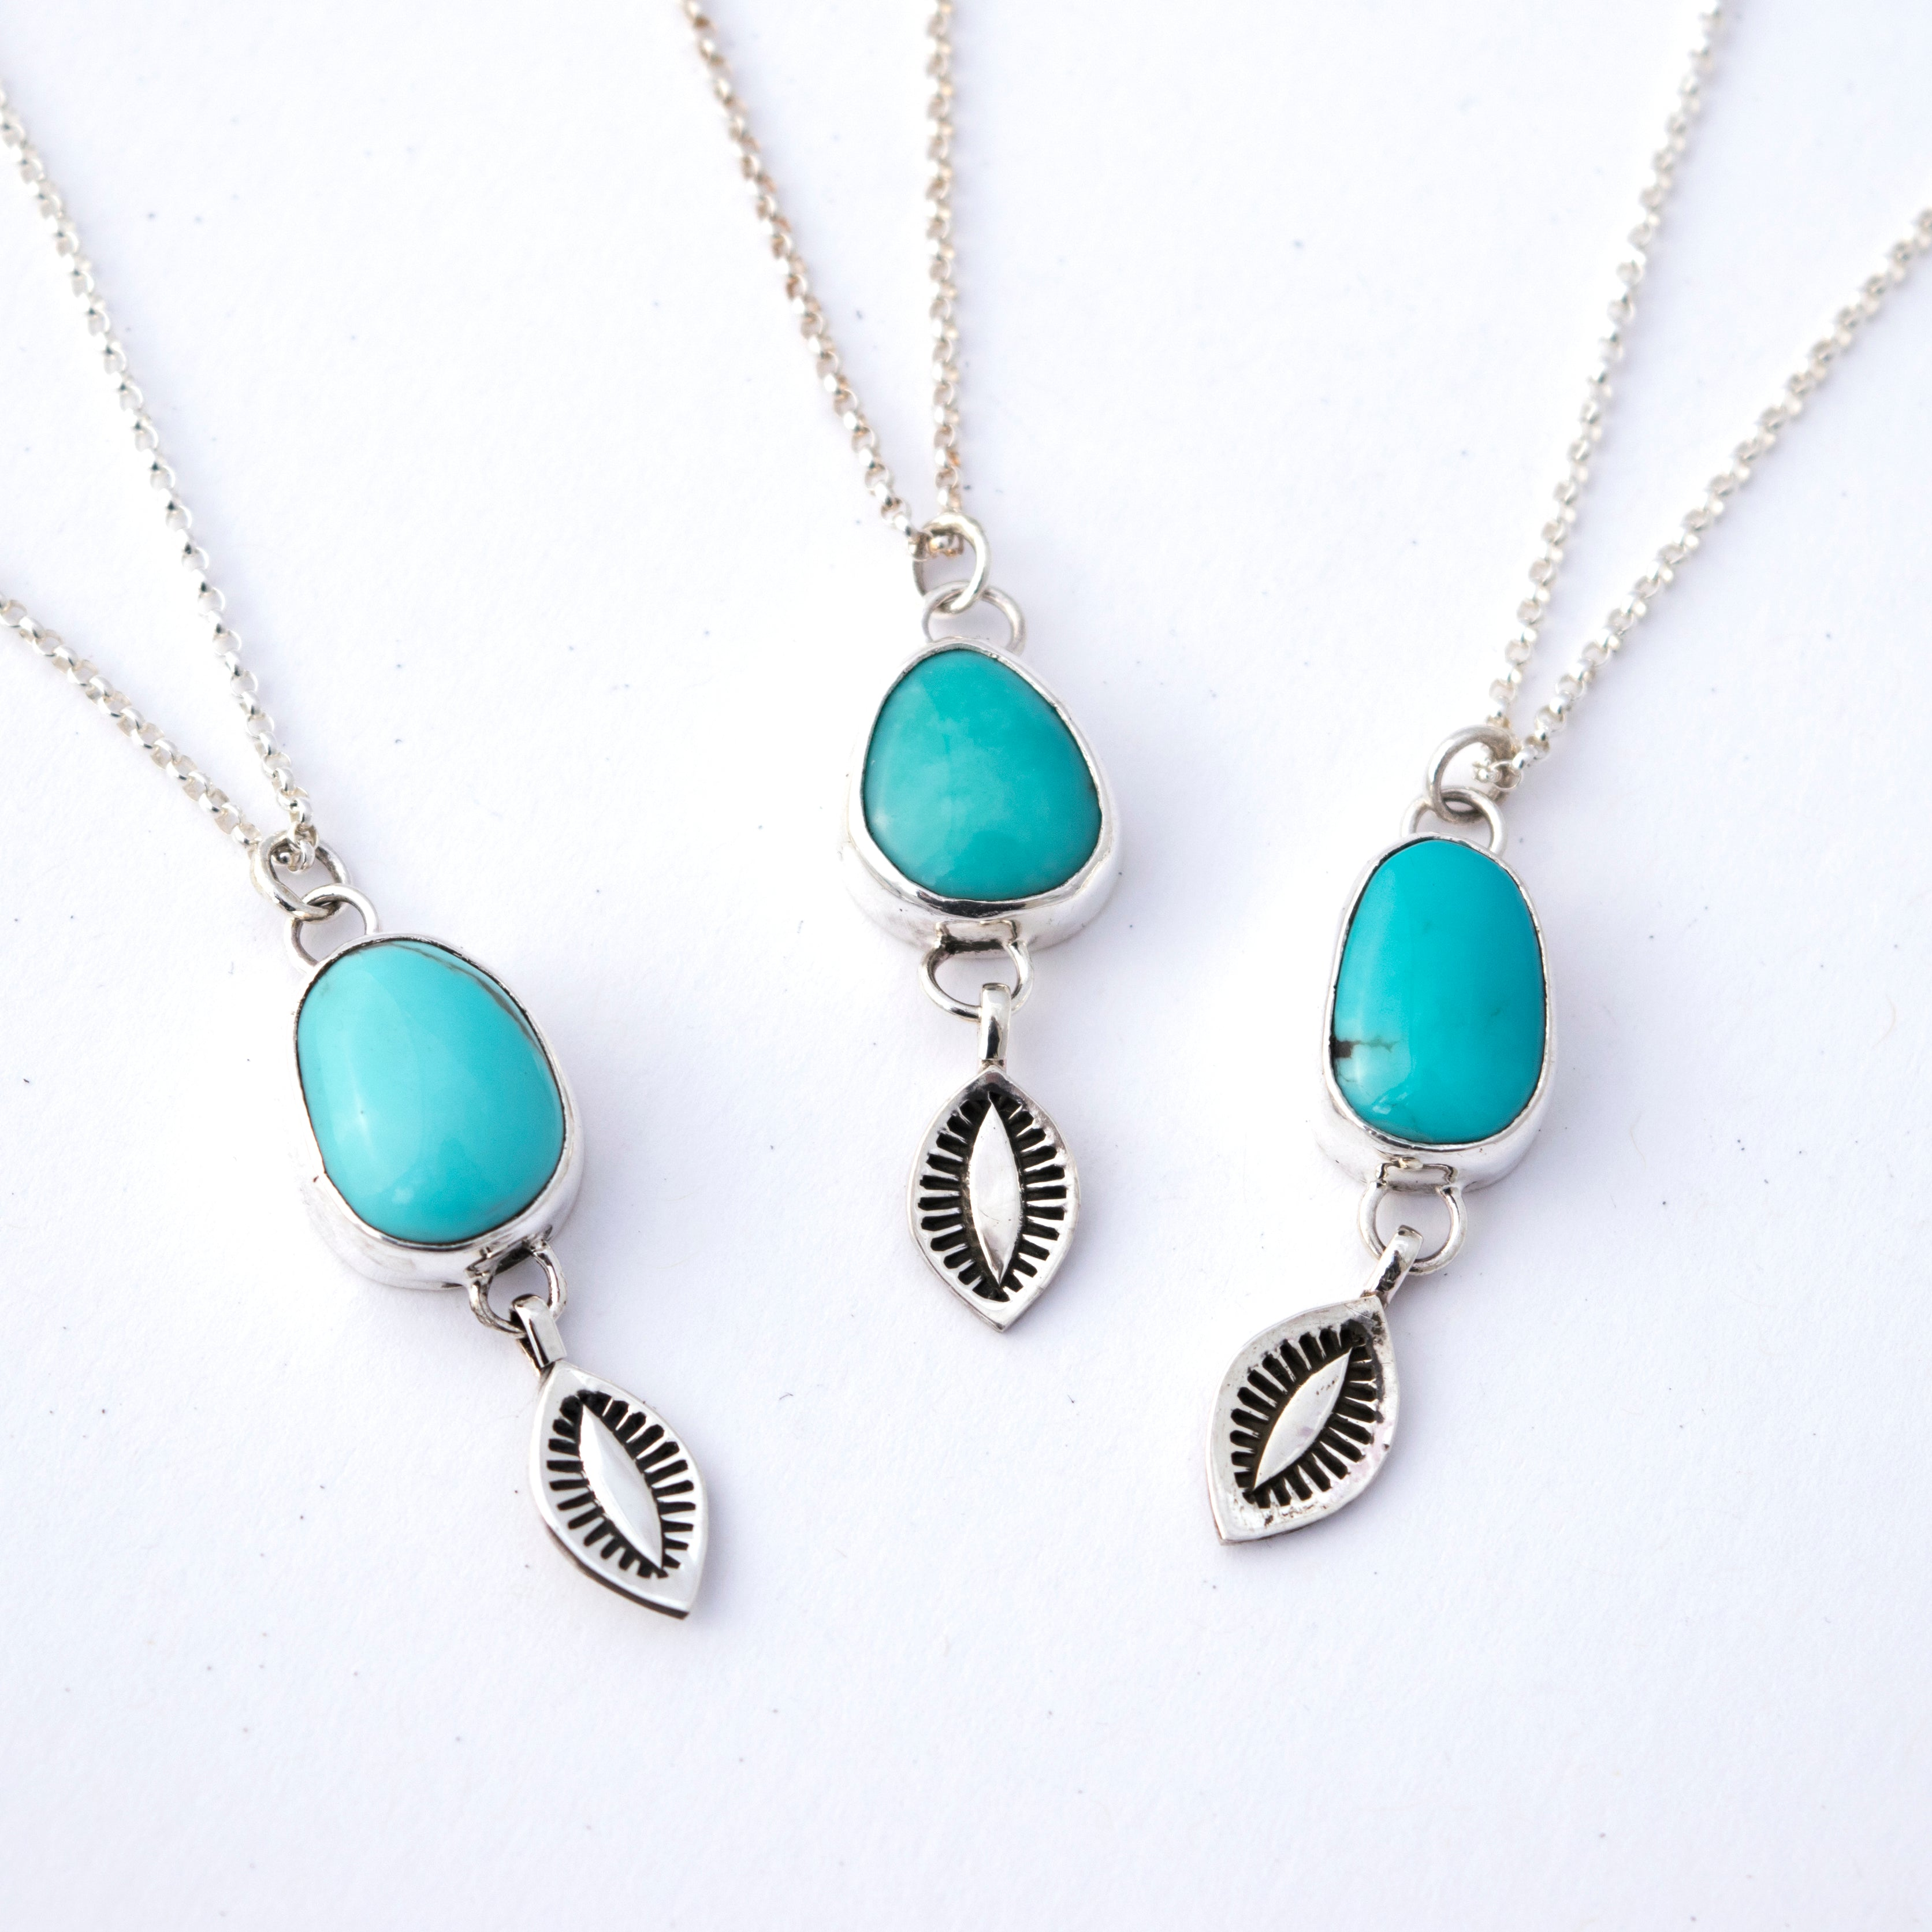 Campitos Turquoise Necklace No. 2